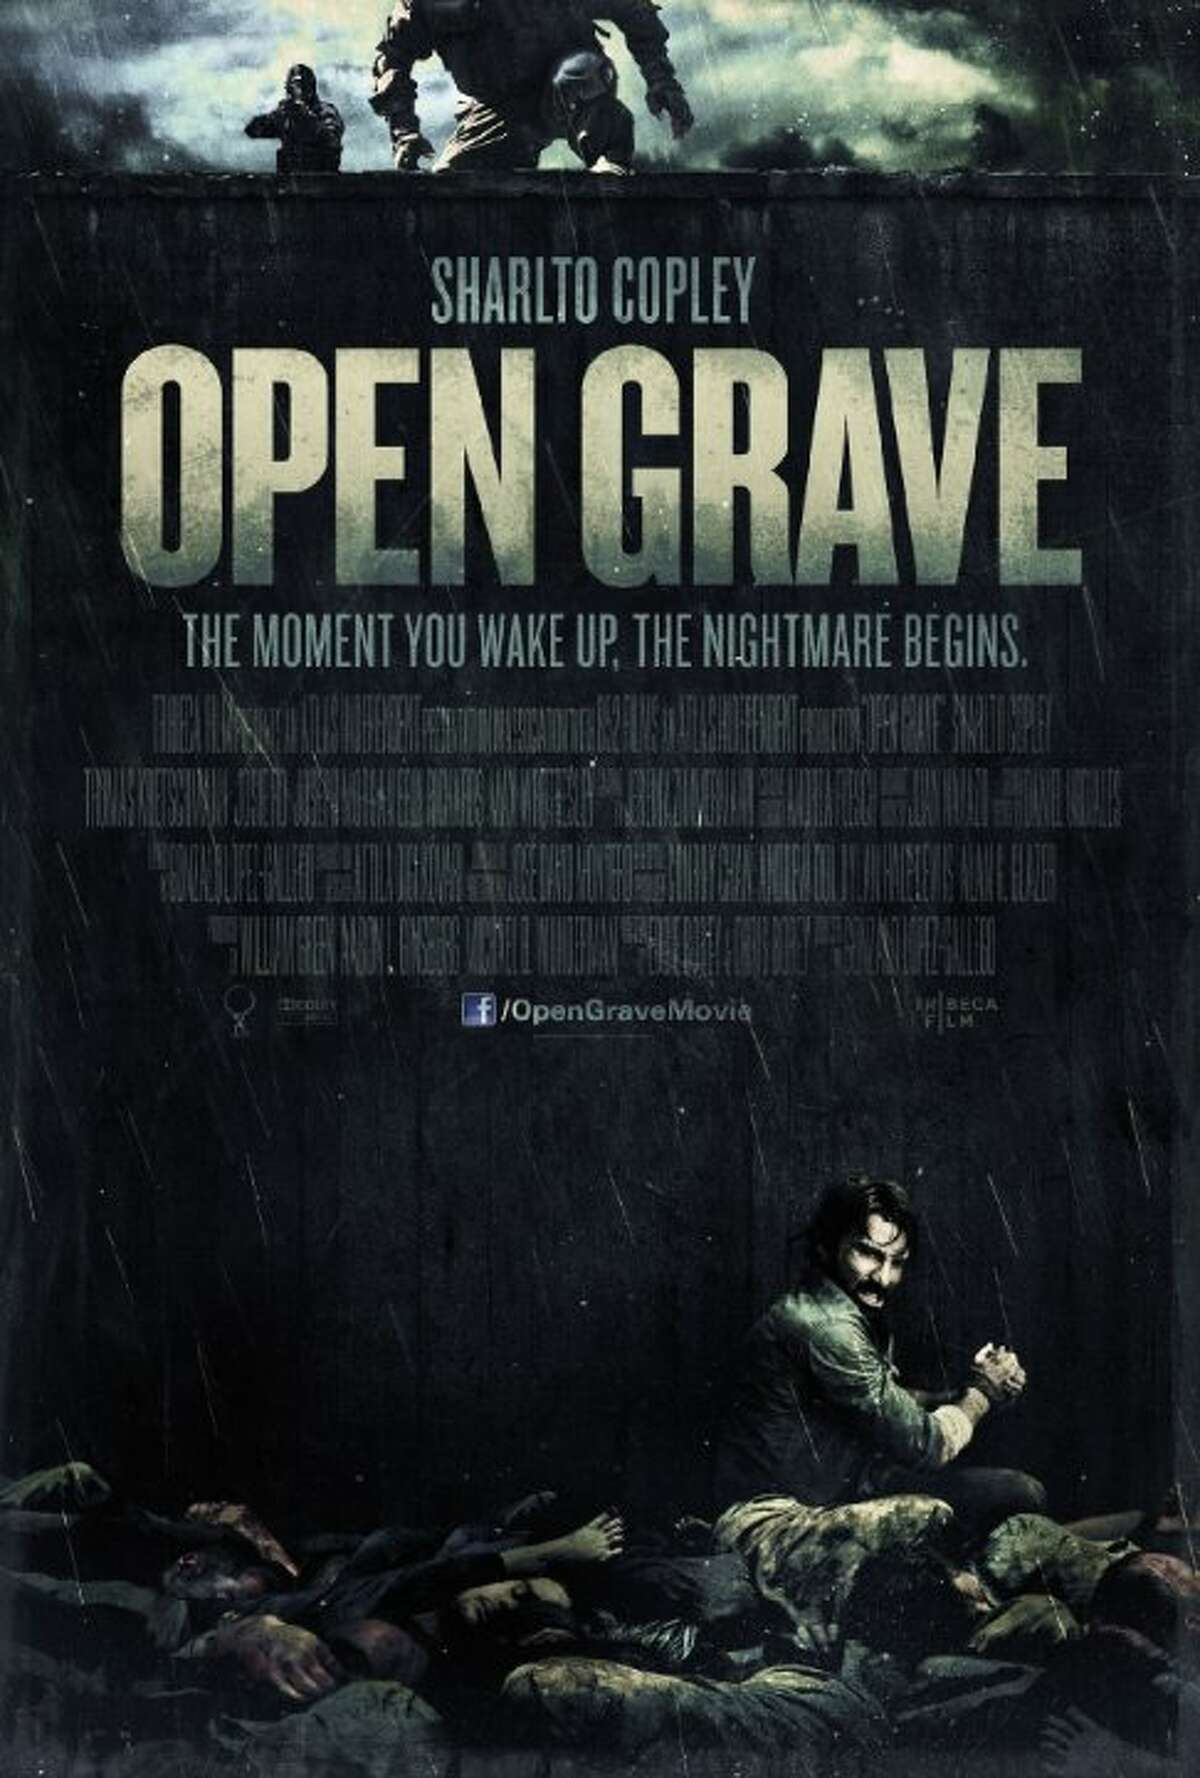 Open Grave Starring: Sharlto Copley, Joseph Morgan, Thomas Kretschmann Release date: Jan. 3 A man (Sharlto Copley, DISTRICT 9, ELYSIUM) wakes up in a pit of dead bodies with no memory of who he is or how he got there. Fleeing the scene, he breaks into a nearby house and is met at gunpoint by a group of terrified strangers, all suffering from memory loss. Suspicion gives way to violence as the group starts to piece together clues about their identities, but when they uncover a threat that's more vicious -- and hungry -- than each other, they are forced to figure out what brought them all together -- before it's too late.